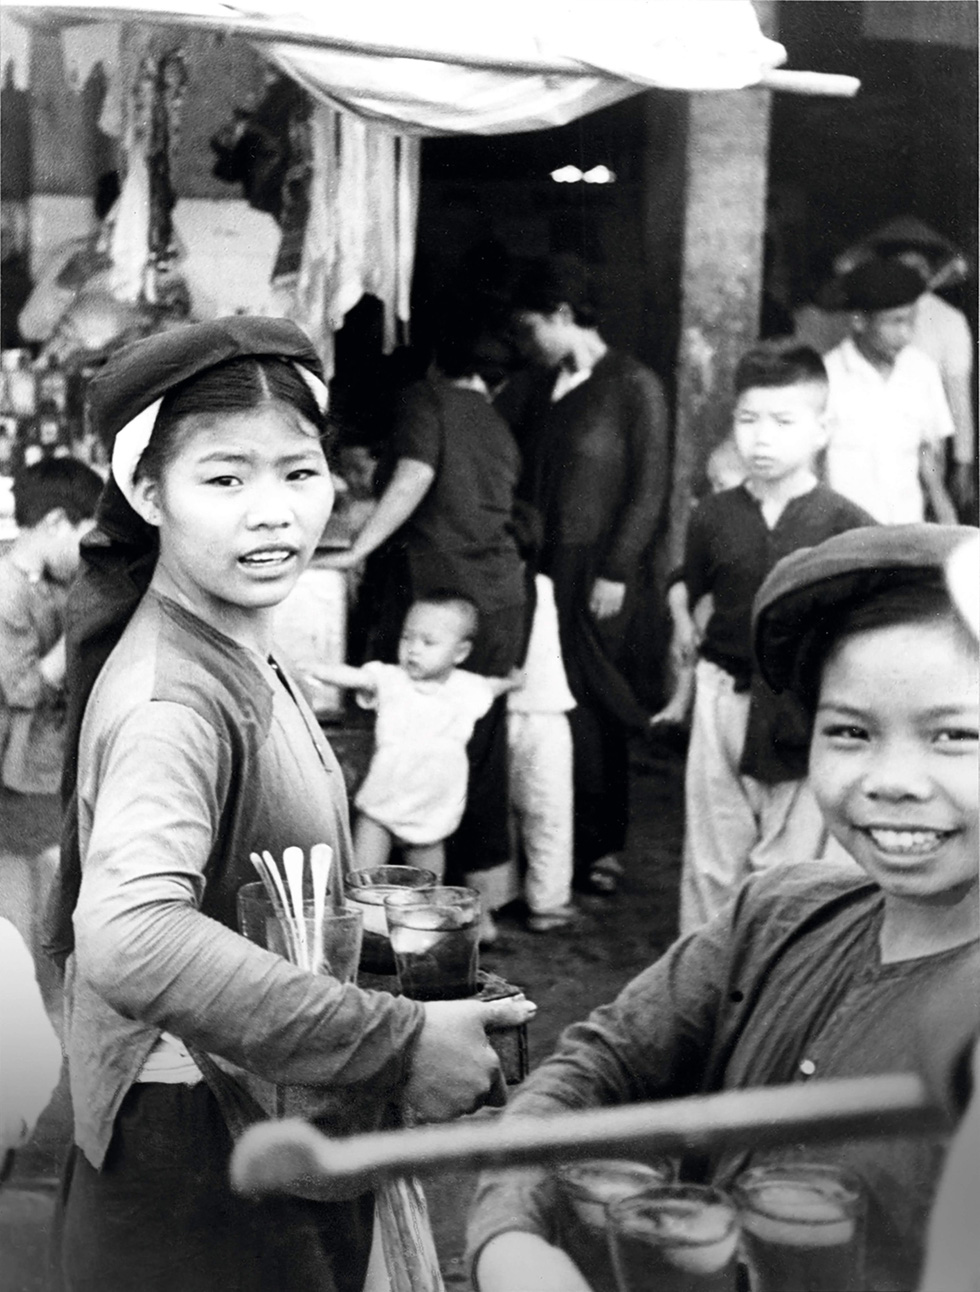 A photo capturing street vendors in Hanoi in 20th century is displayed at an exhibition in Hanoi. Photo: Thien Dieu / Tuoi Tre